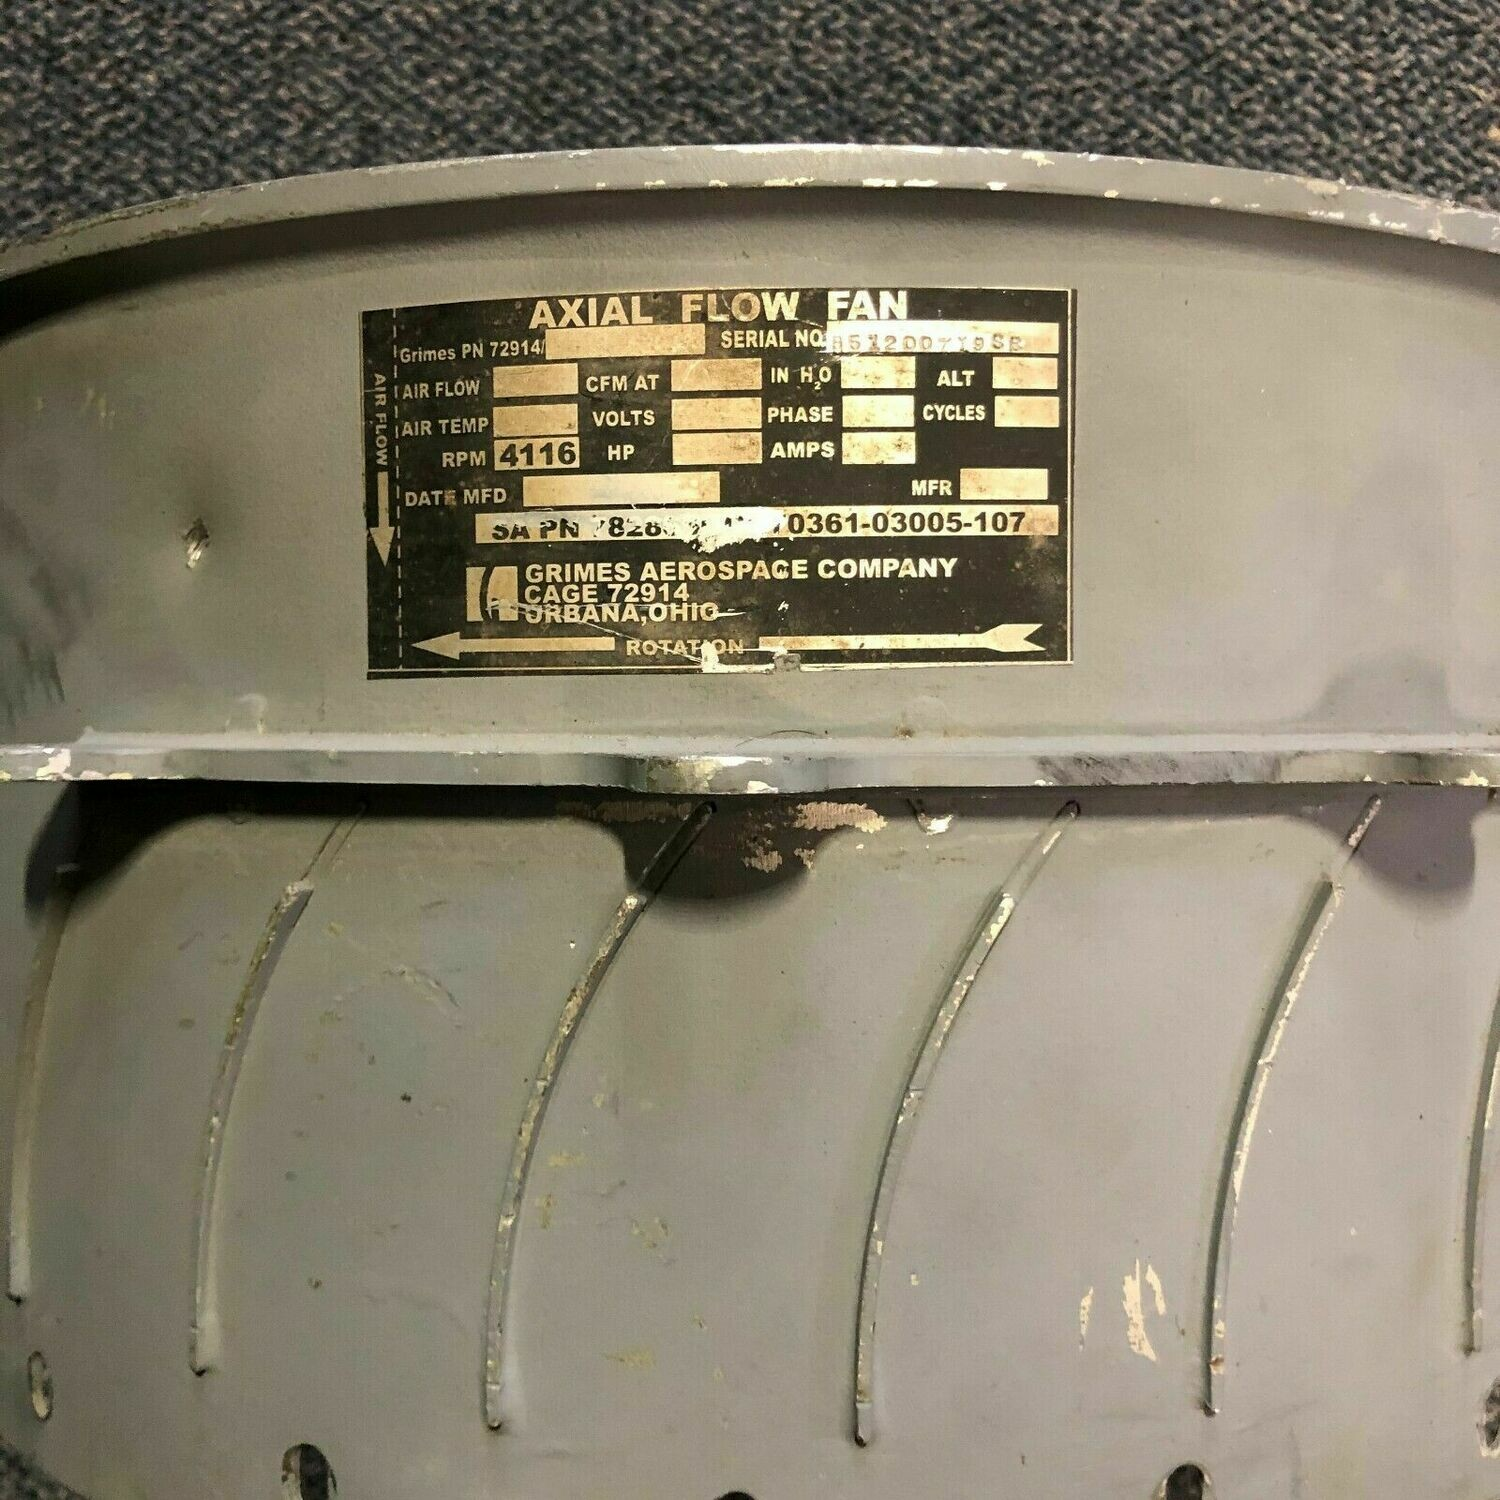 VANEAXIAL FLOW FAN CABIN PRESSURIZER GRIMES AEROSPACE UH-60 HELICOPTER